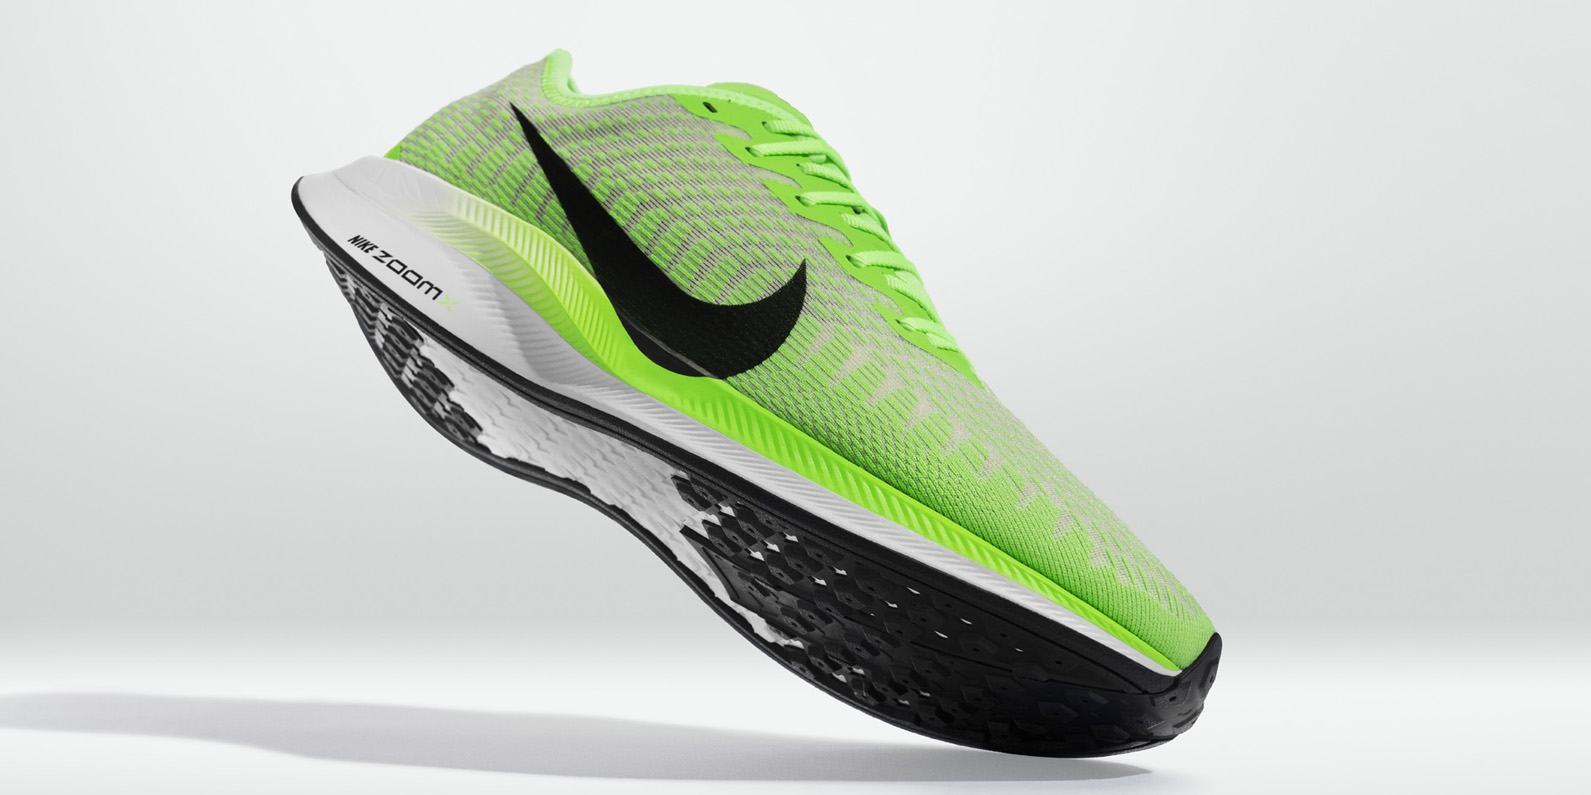 off Nike, adidas, Under Armour, more